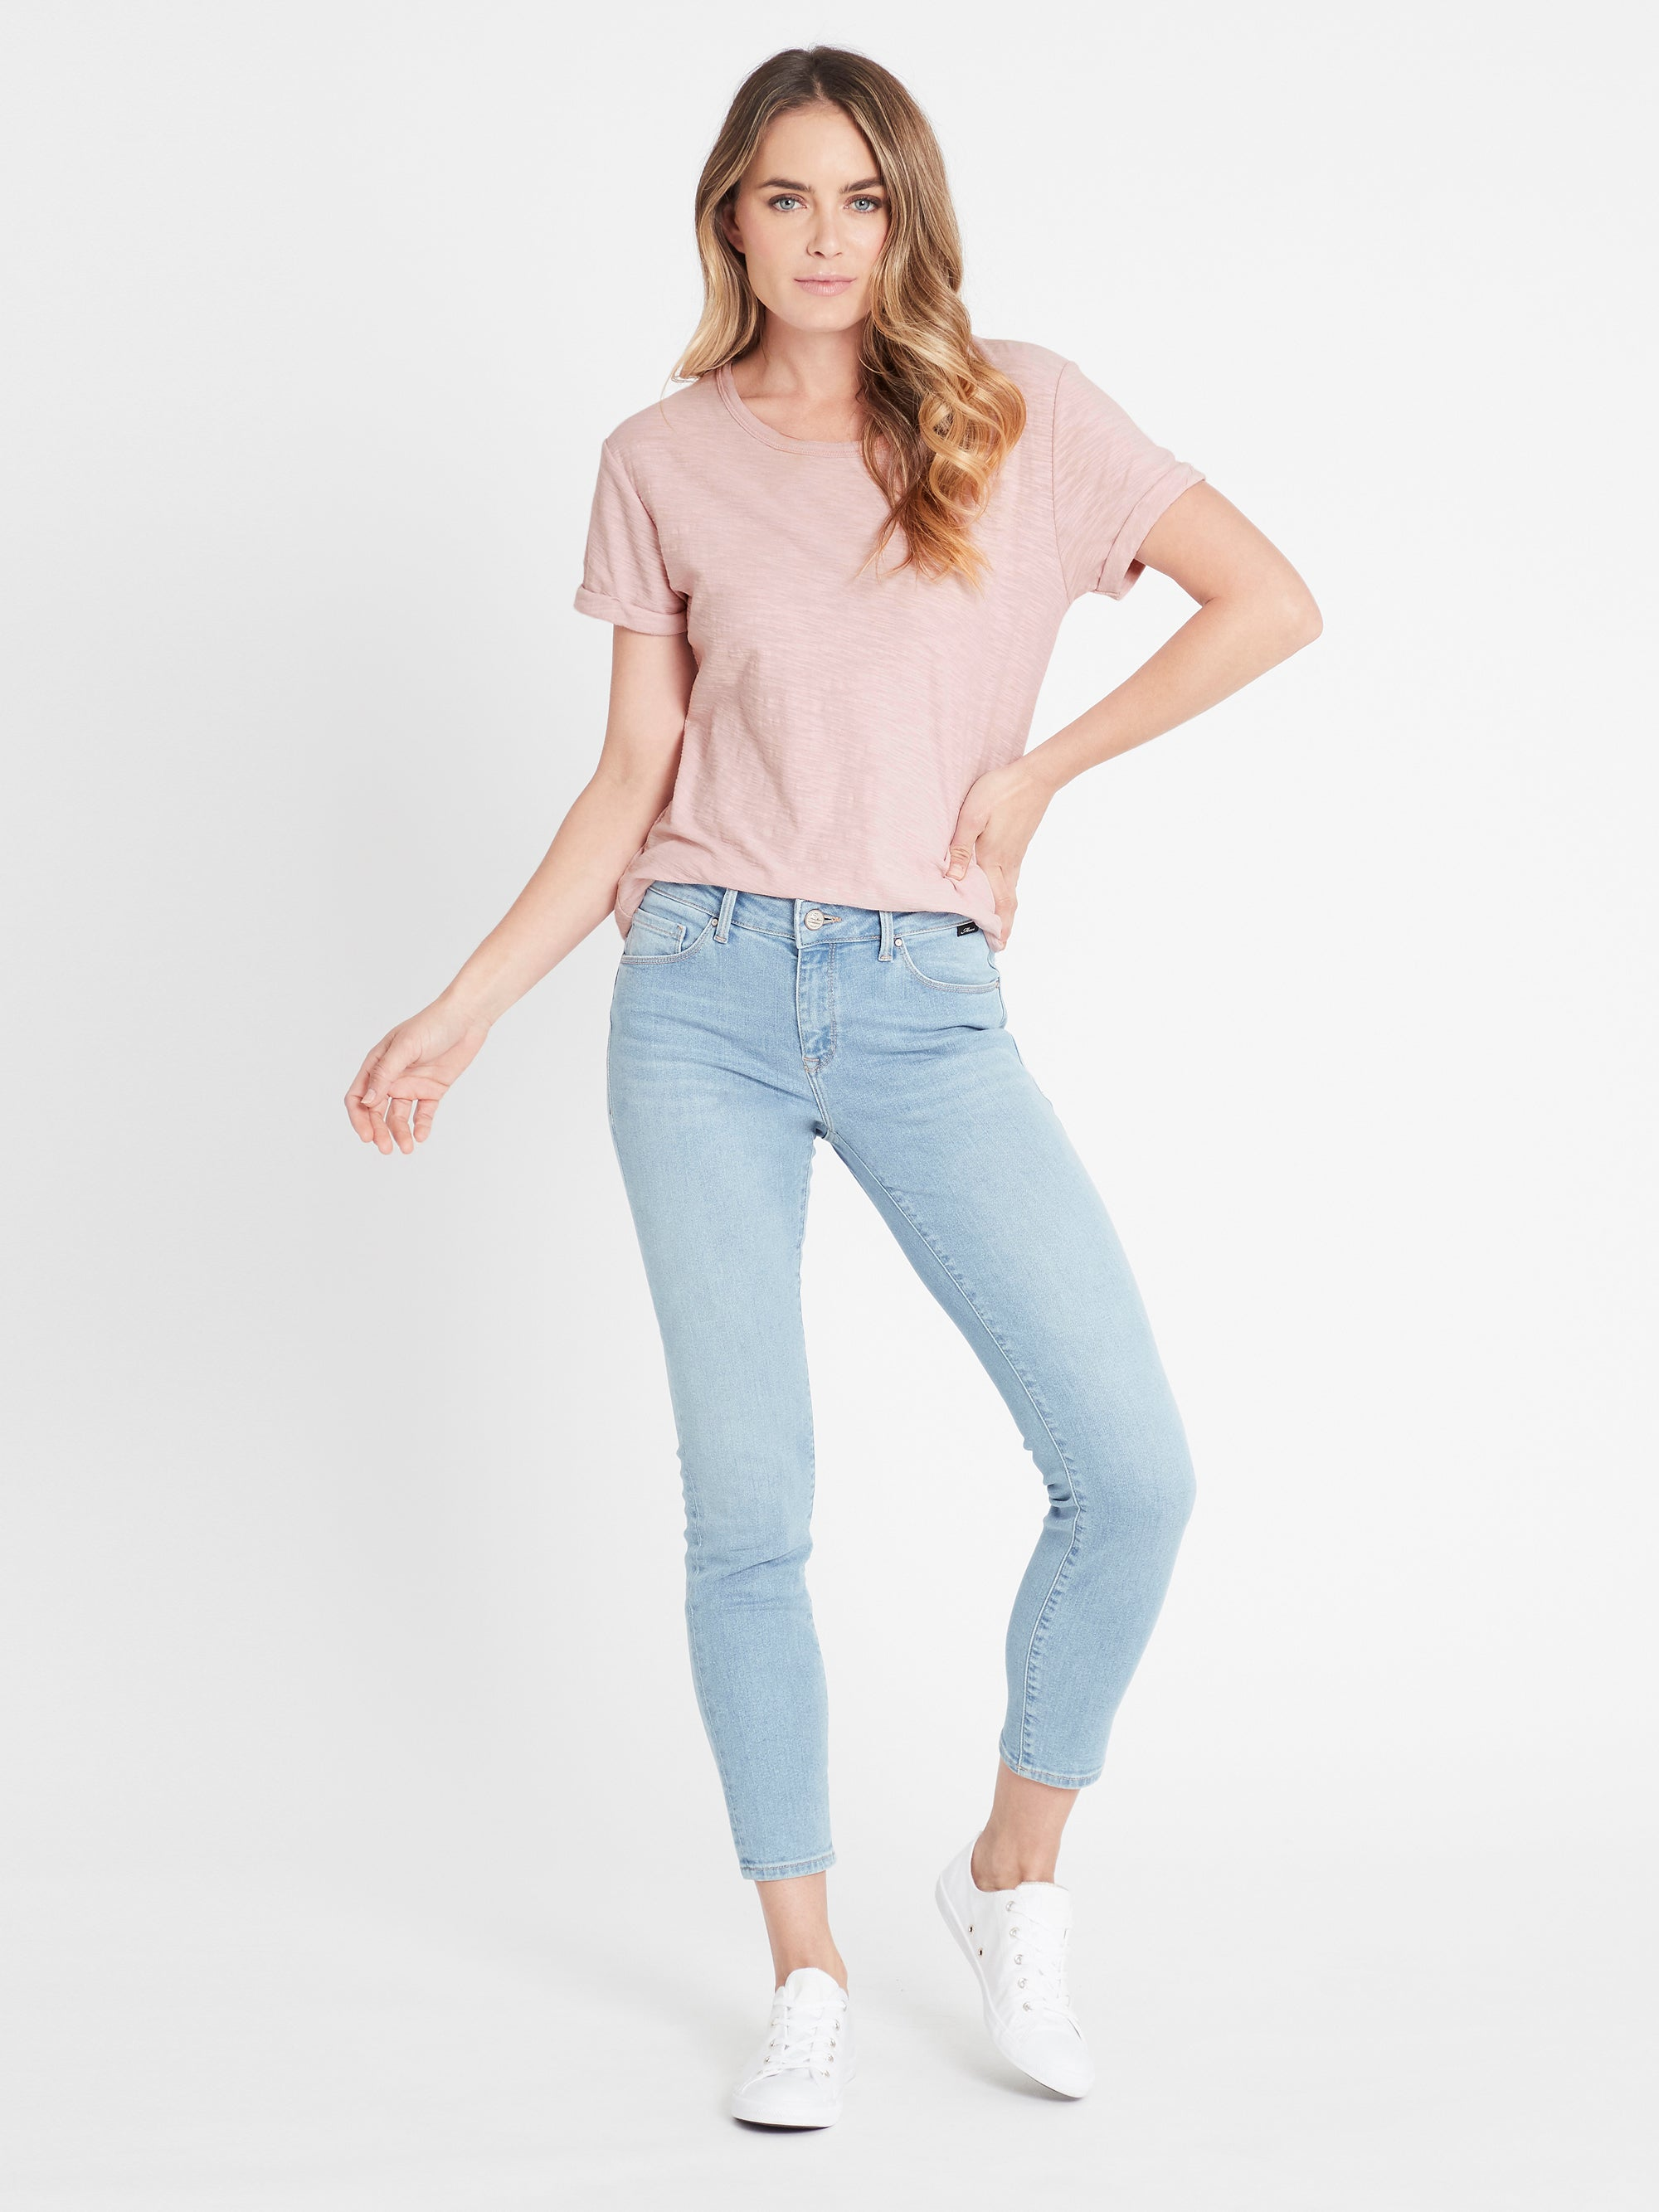 Alissa Ankle Skinny Curve Jeans in Light Blue 90's Stretch